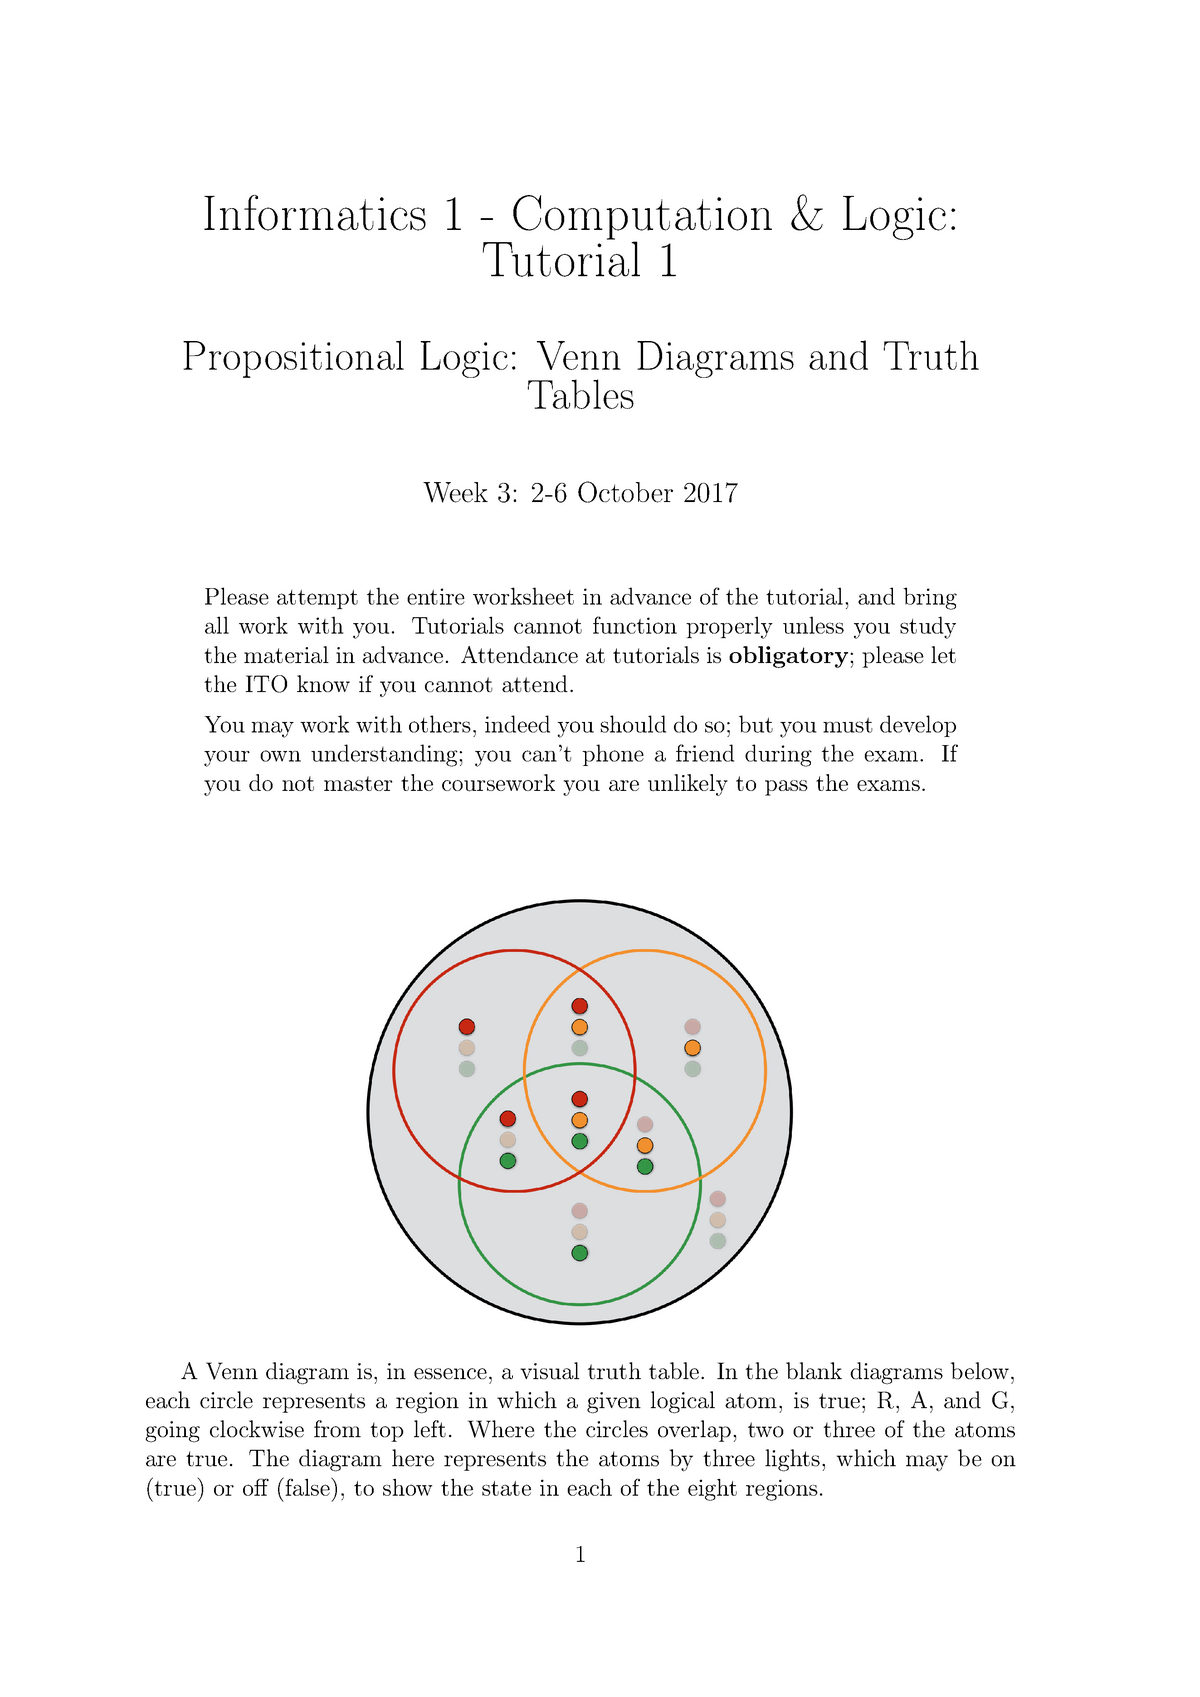 logic venn diagram generator solutions 1 propositional logic venn diagrams and truth tables  venn diagrams and truth tables